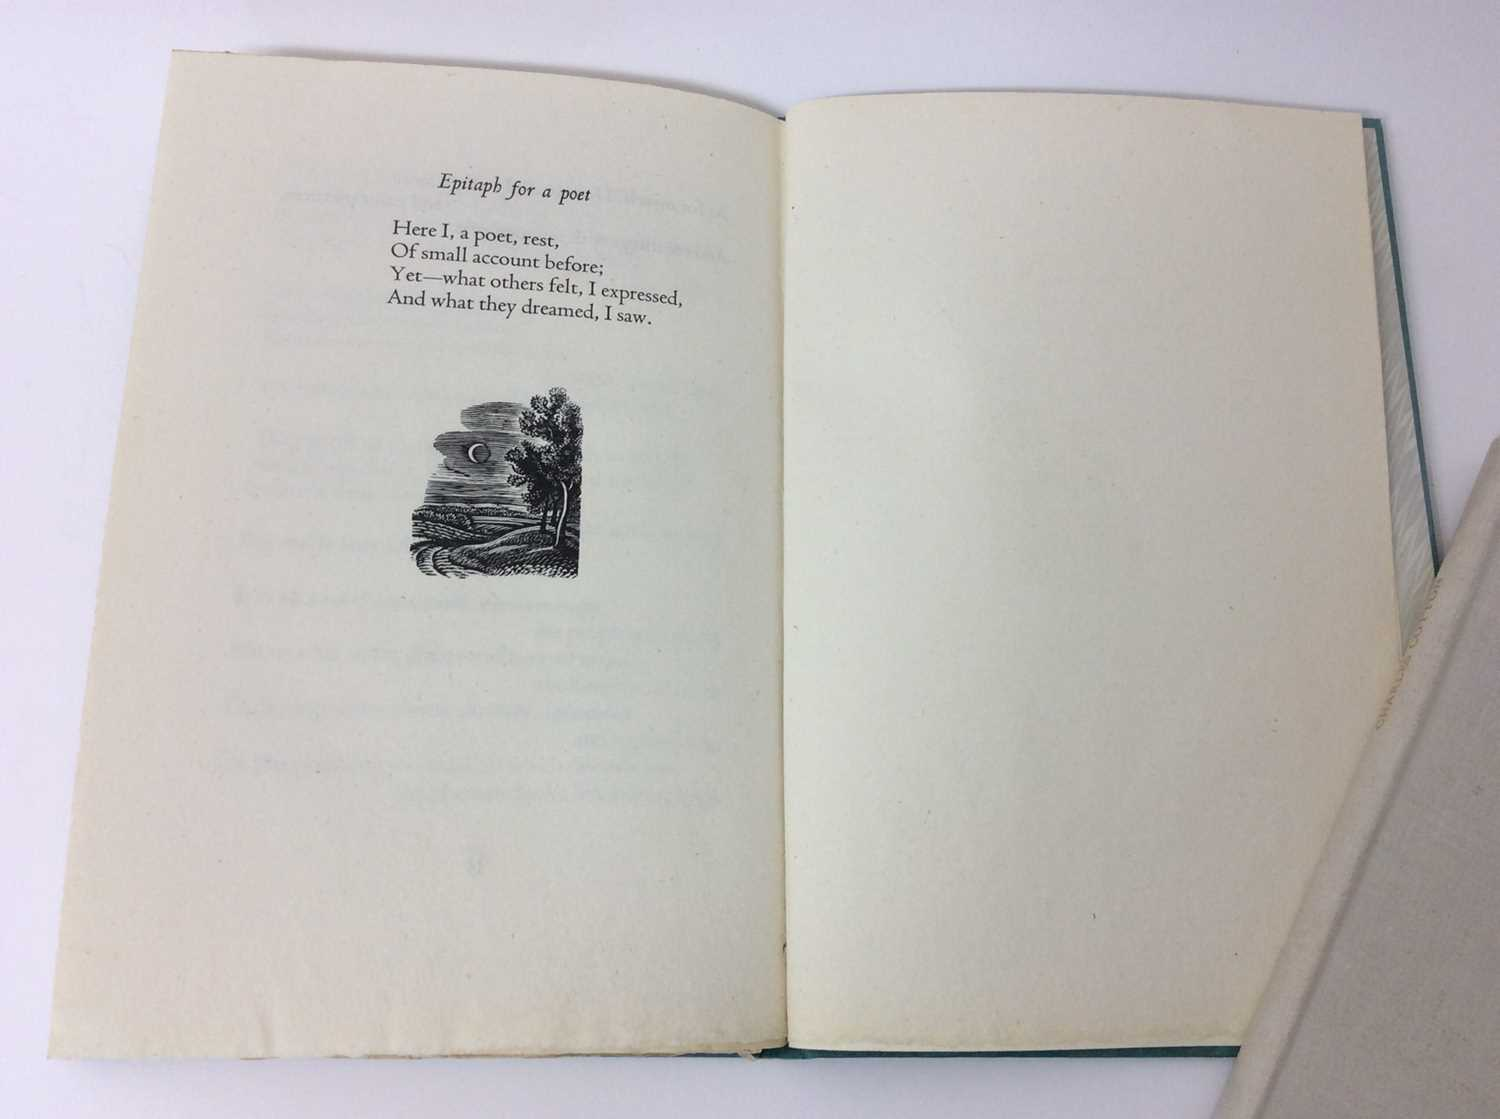 Evelyn Ansell - Twenty Five Poems, also Poems from the Works of Charles Cotton, illustrated by Claud - Image 8 of 13